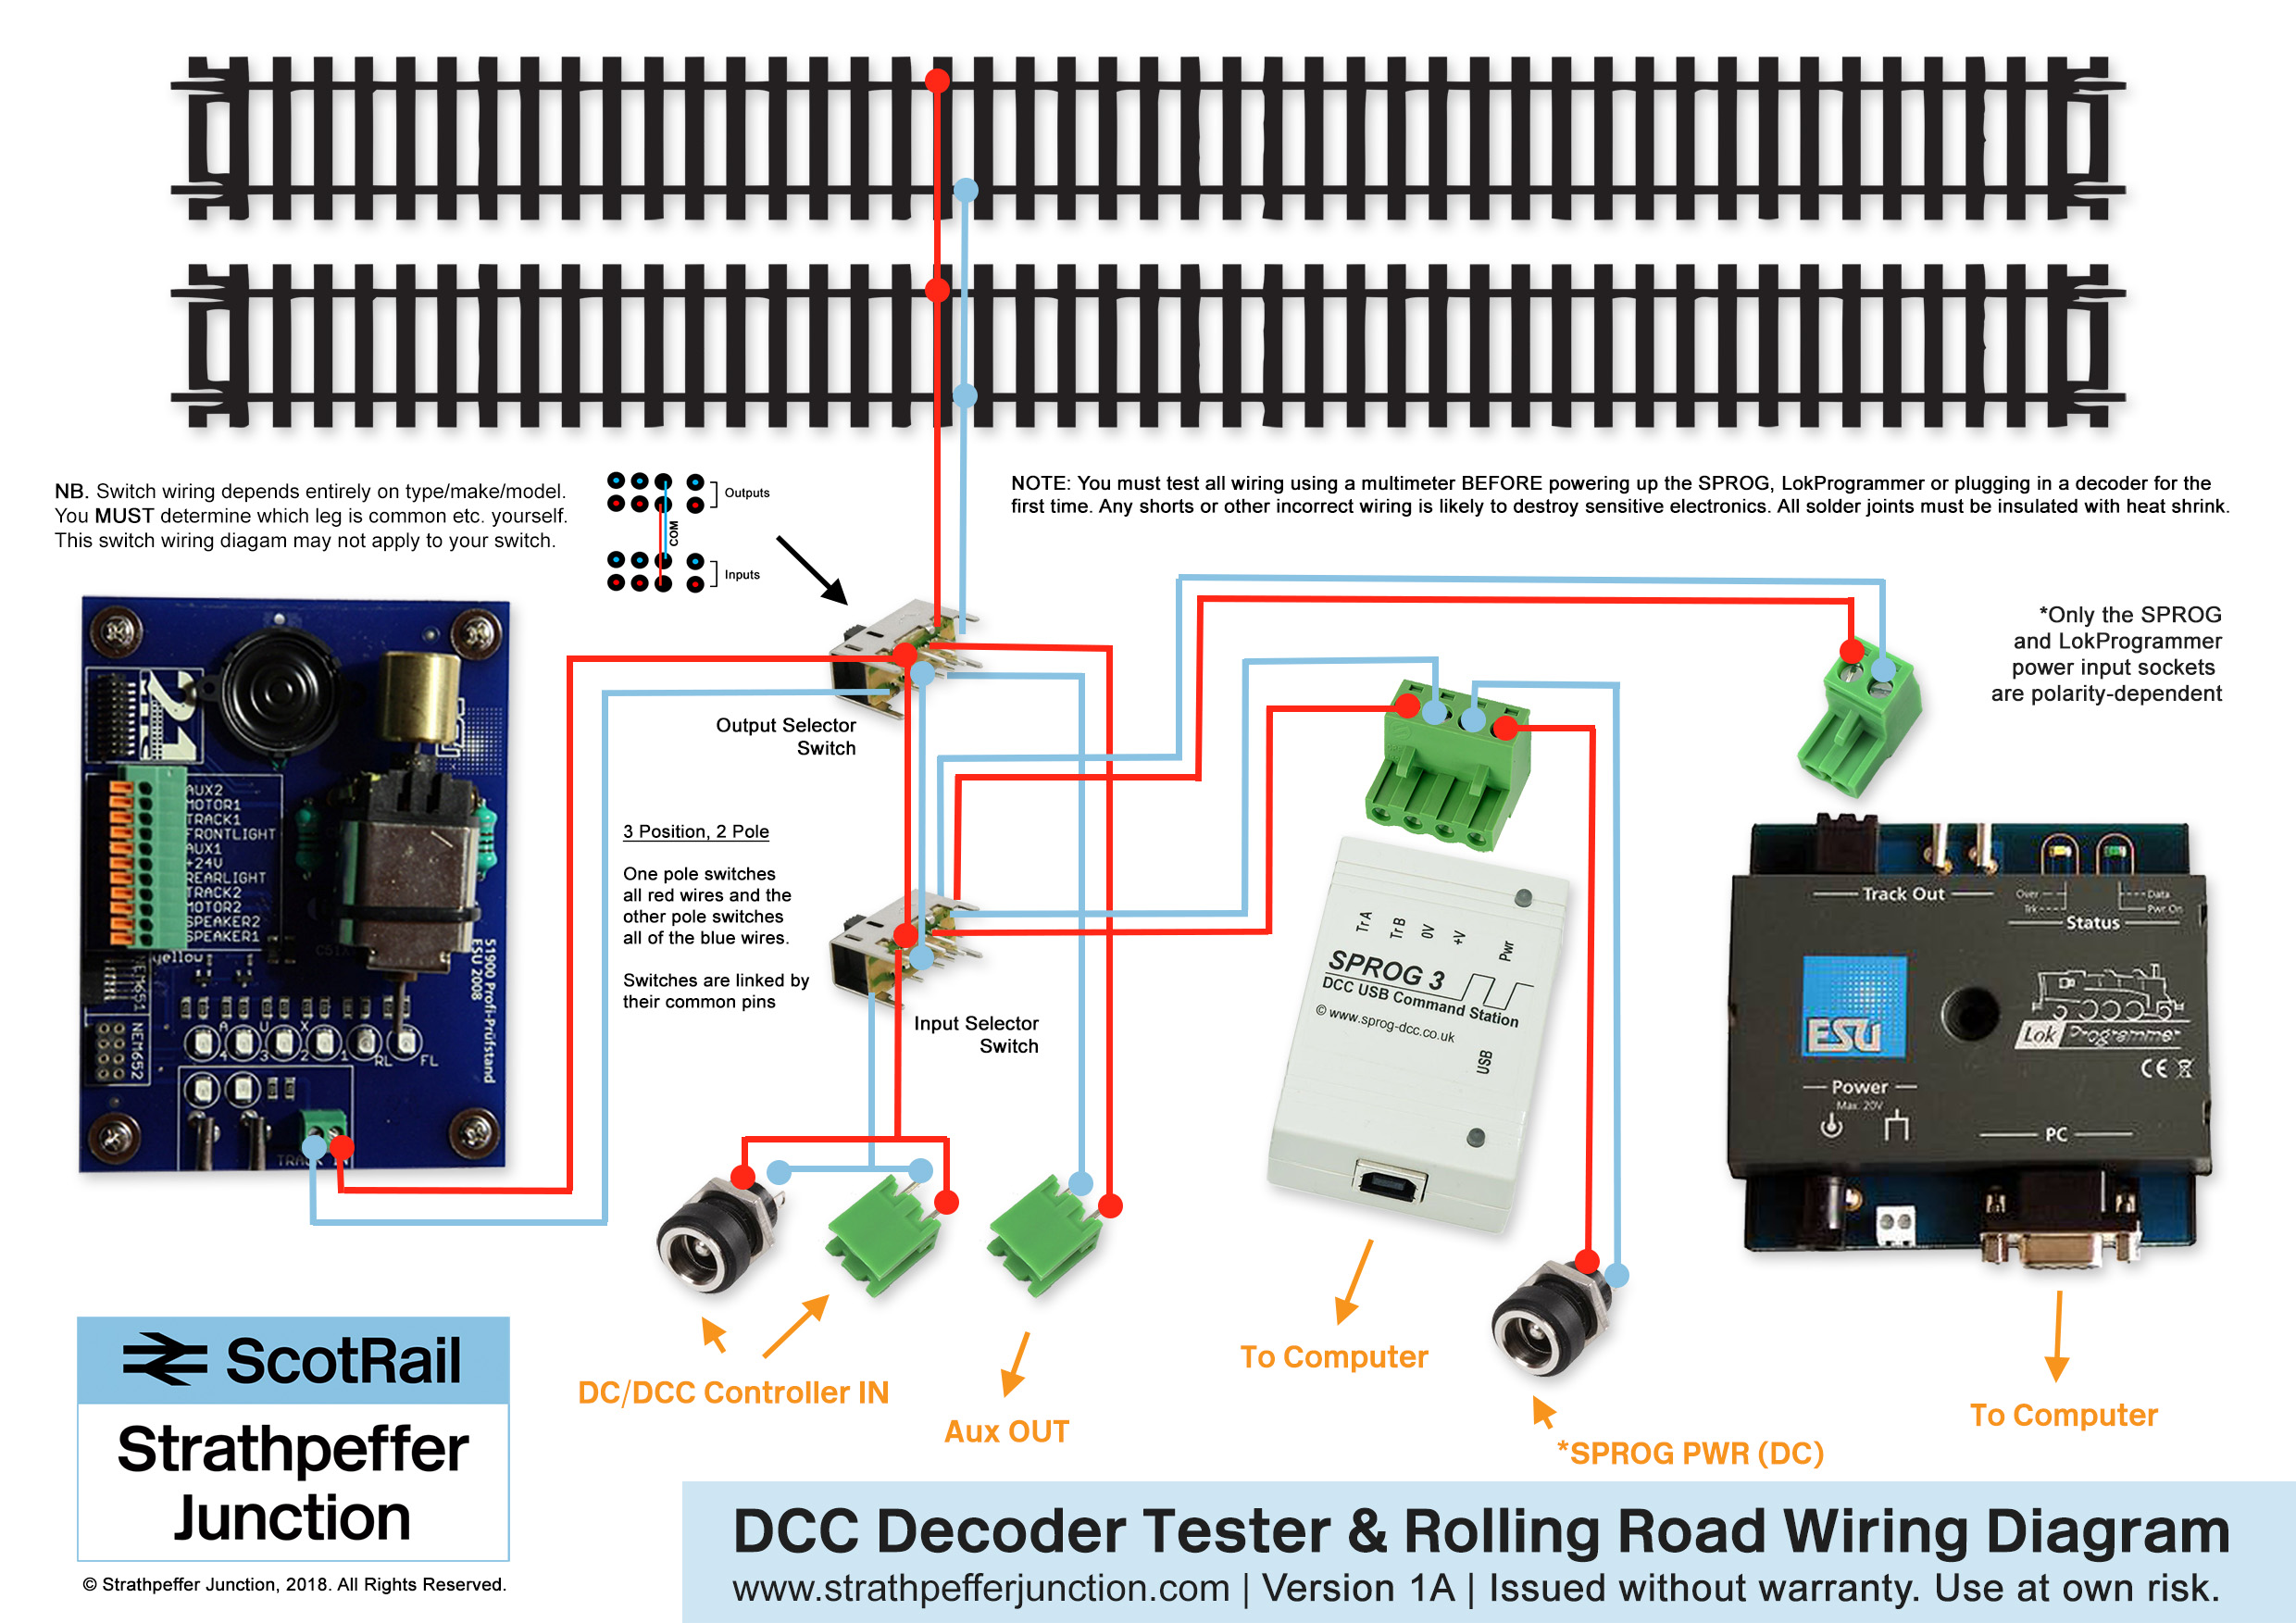 You can download a PDF version of the wiring diagram for the test board  featured in the video via the link below: